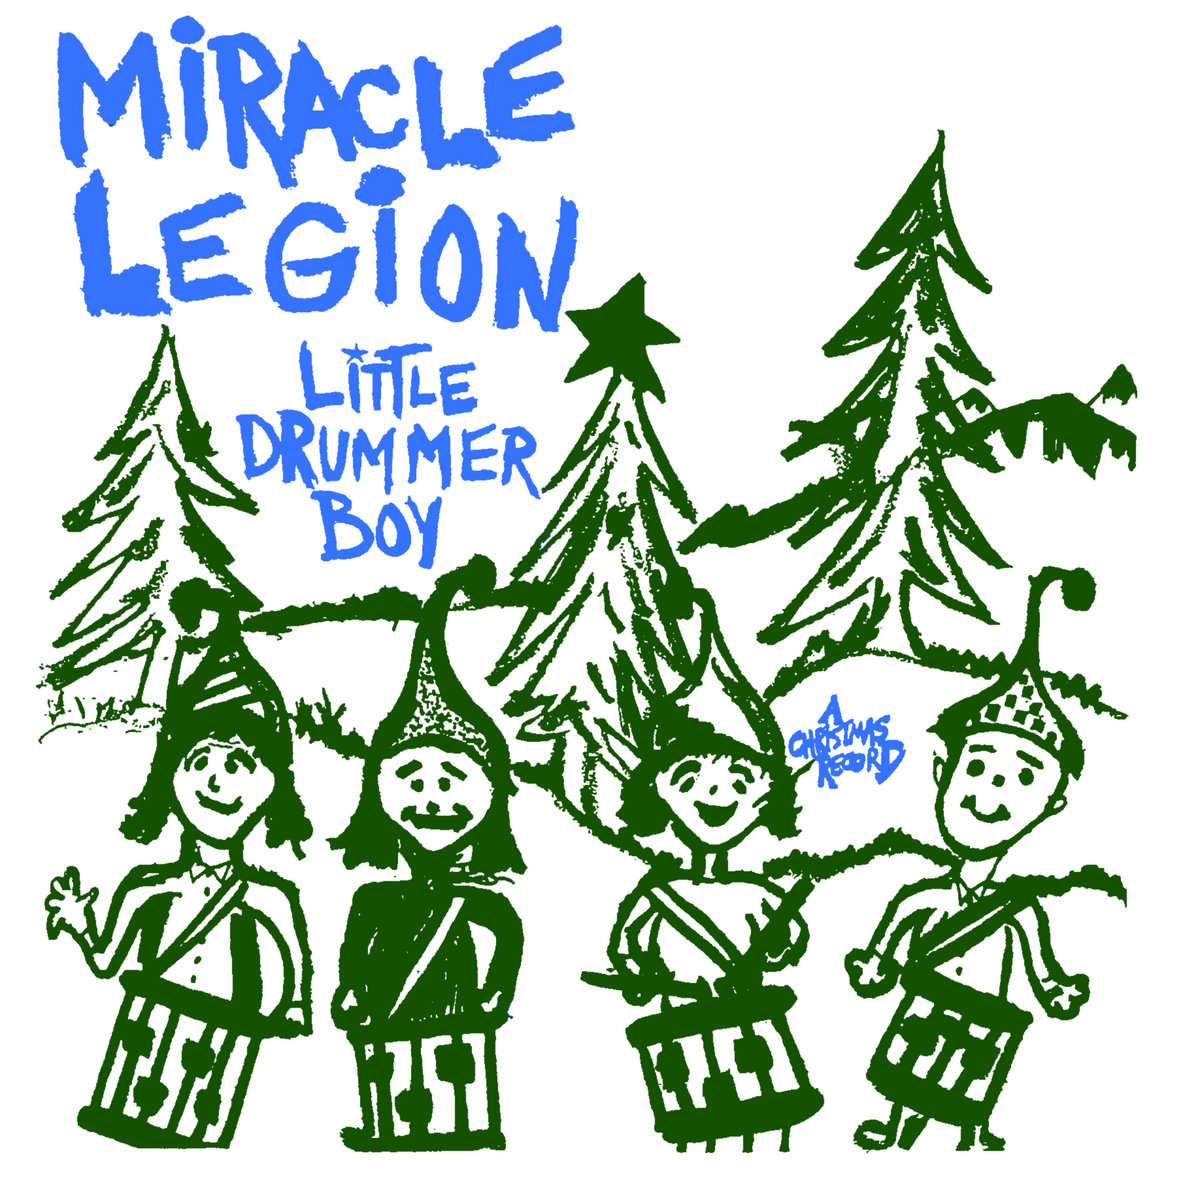 Christmas Drummer.Little Drummer Boy A Christmas Record Miracle Legion